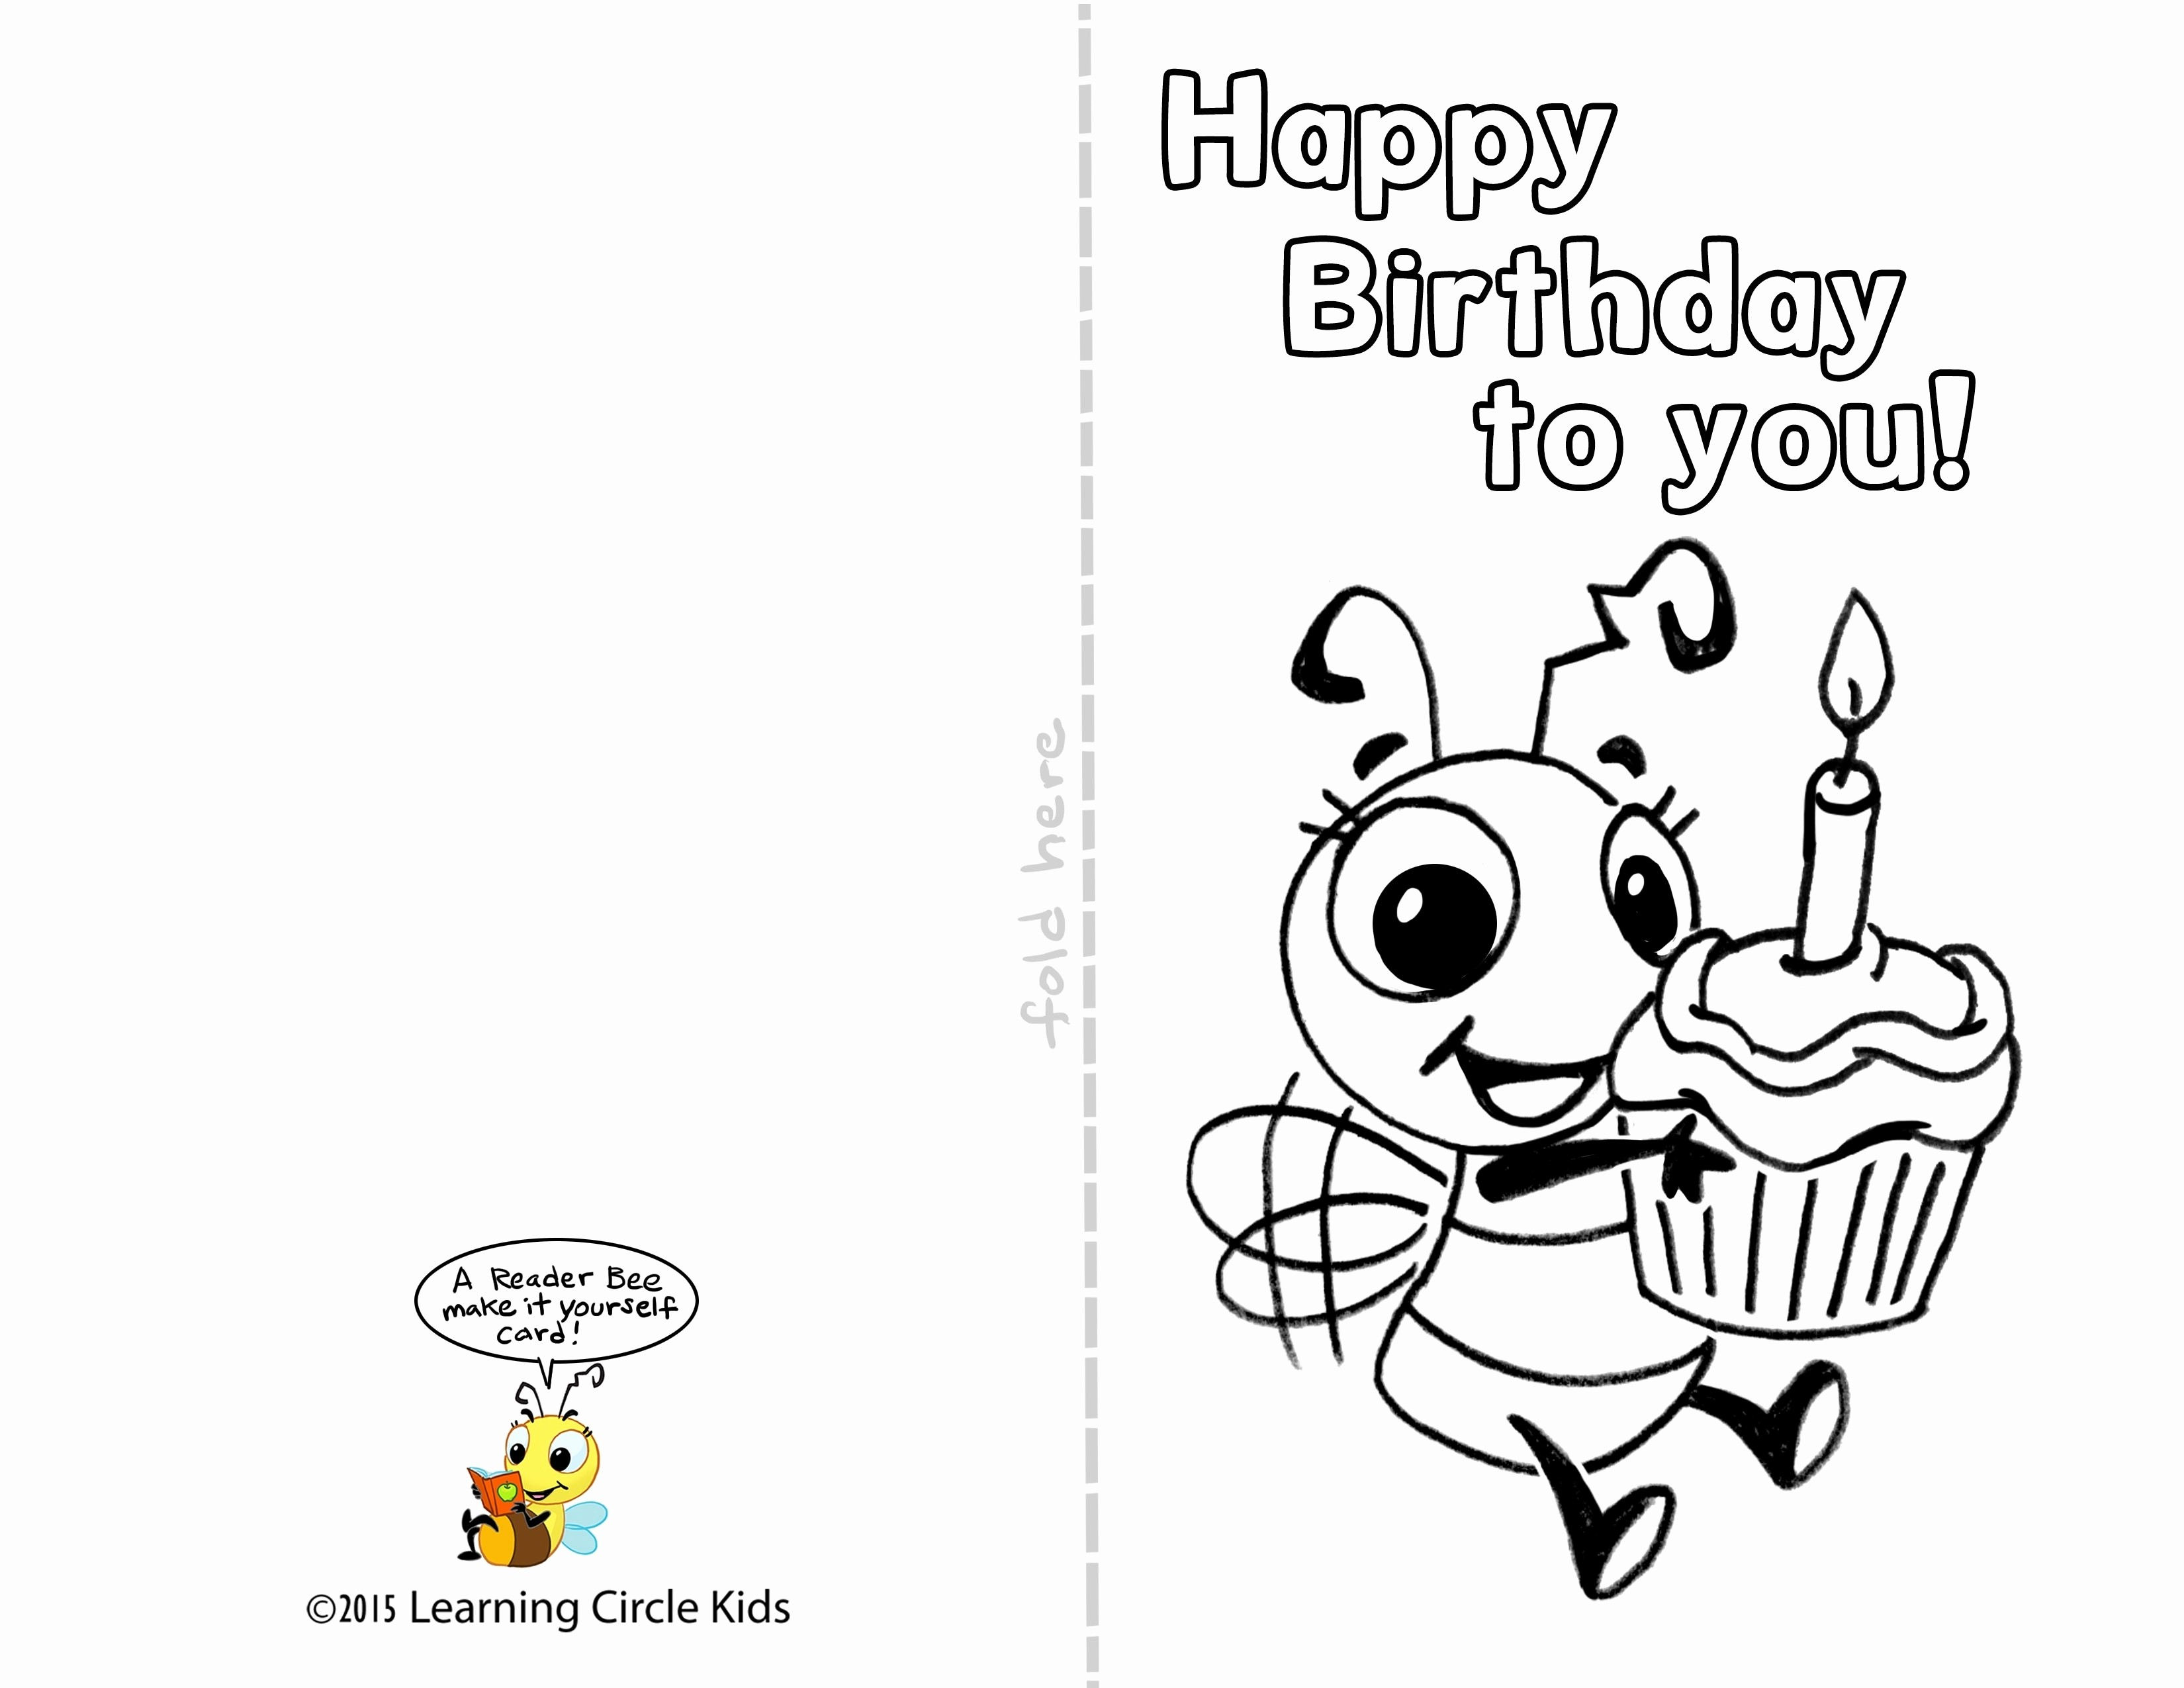 Free Printable Birthday Card Refrence Printable Birthday Cards For - Free Printable Birthday Cards For Wife